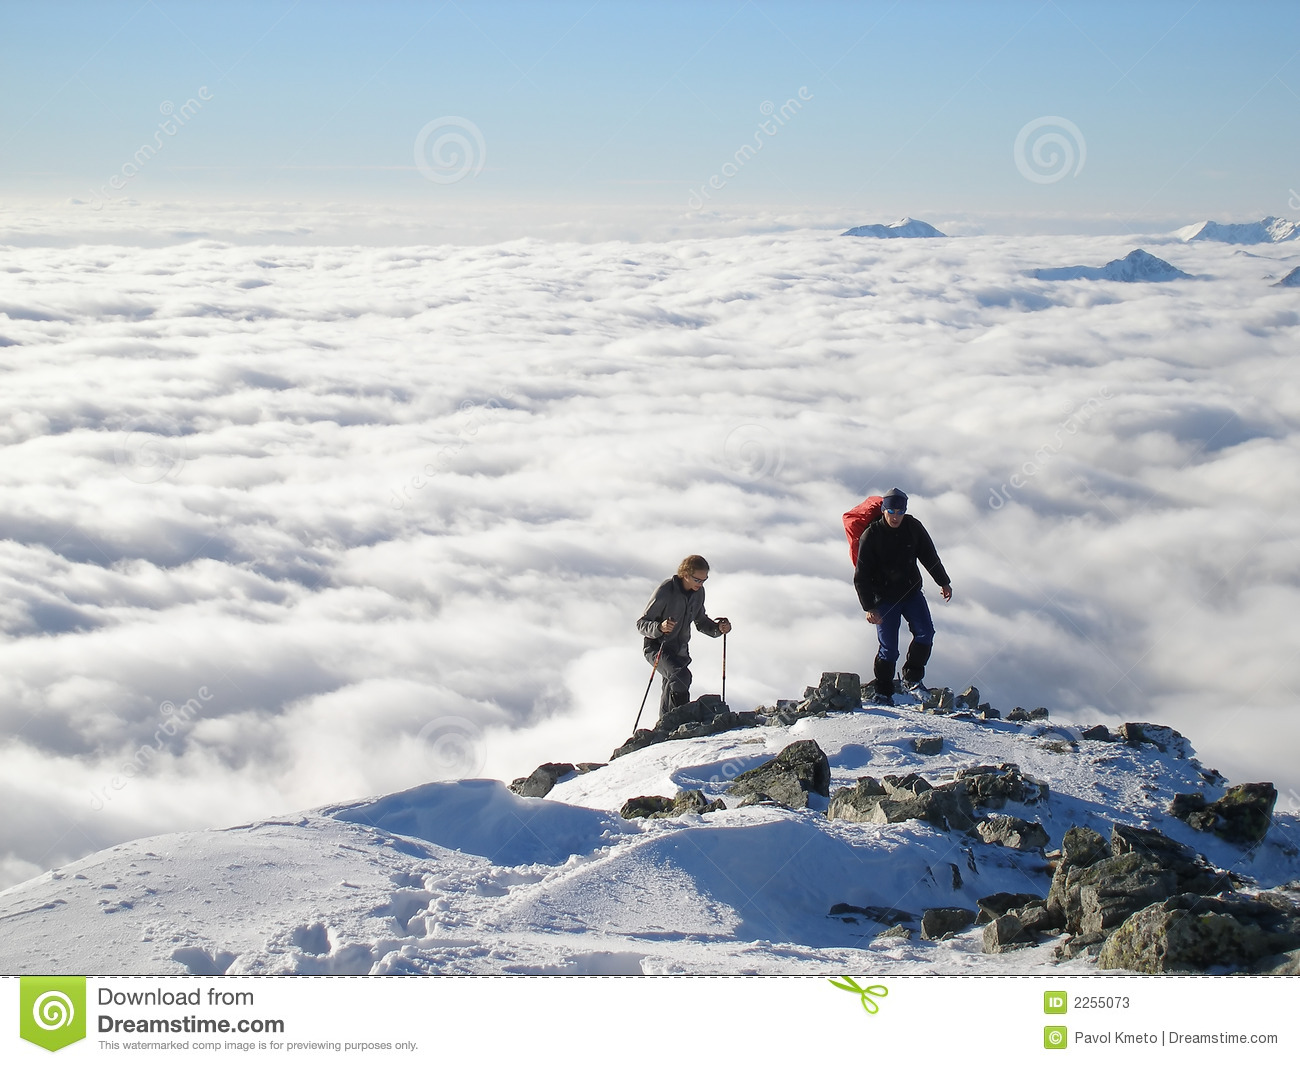 Mountain Hiking Stock Photos   Image  2255073